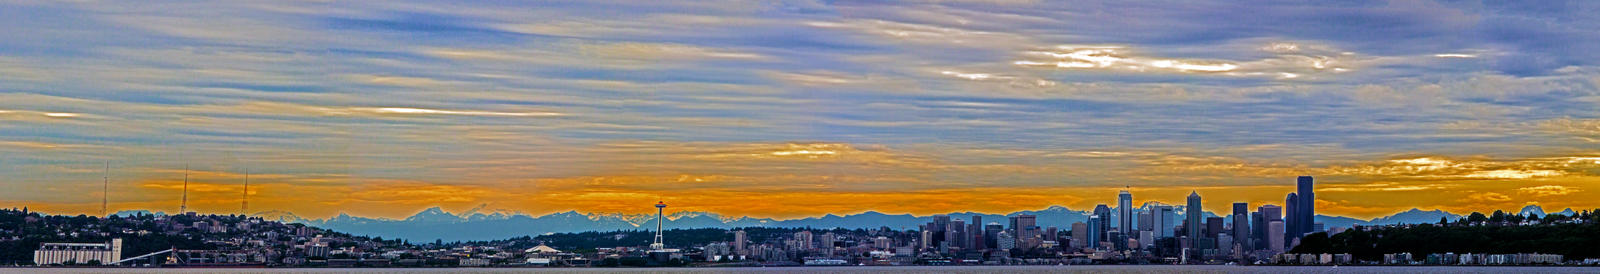 Seattle Waterfront by Mackingster